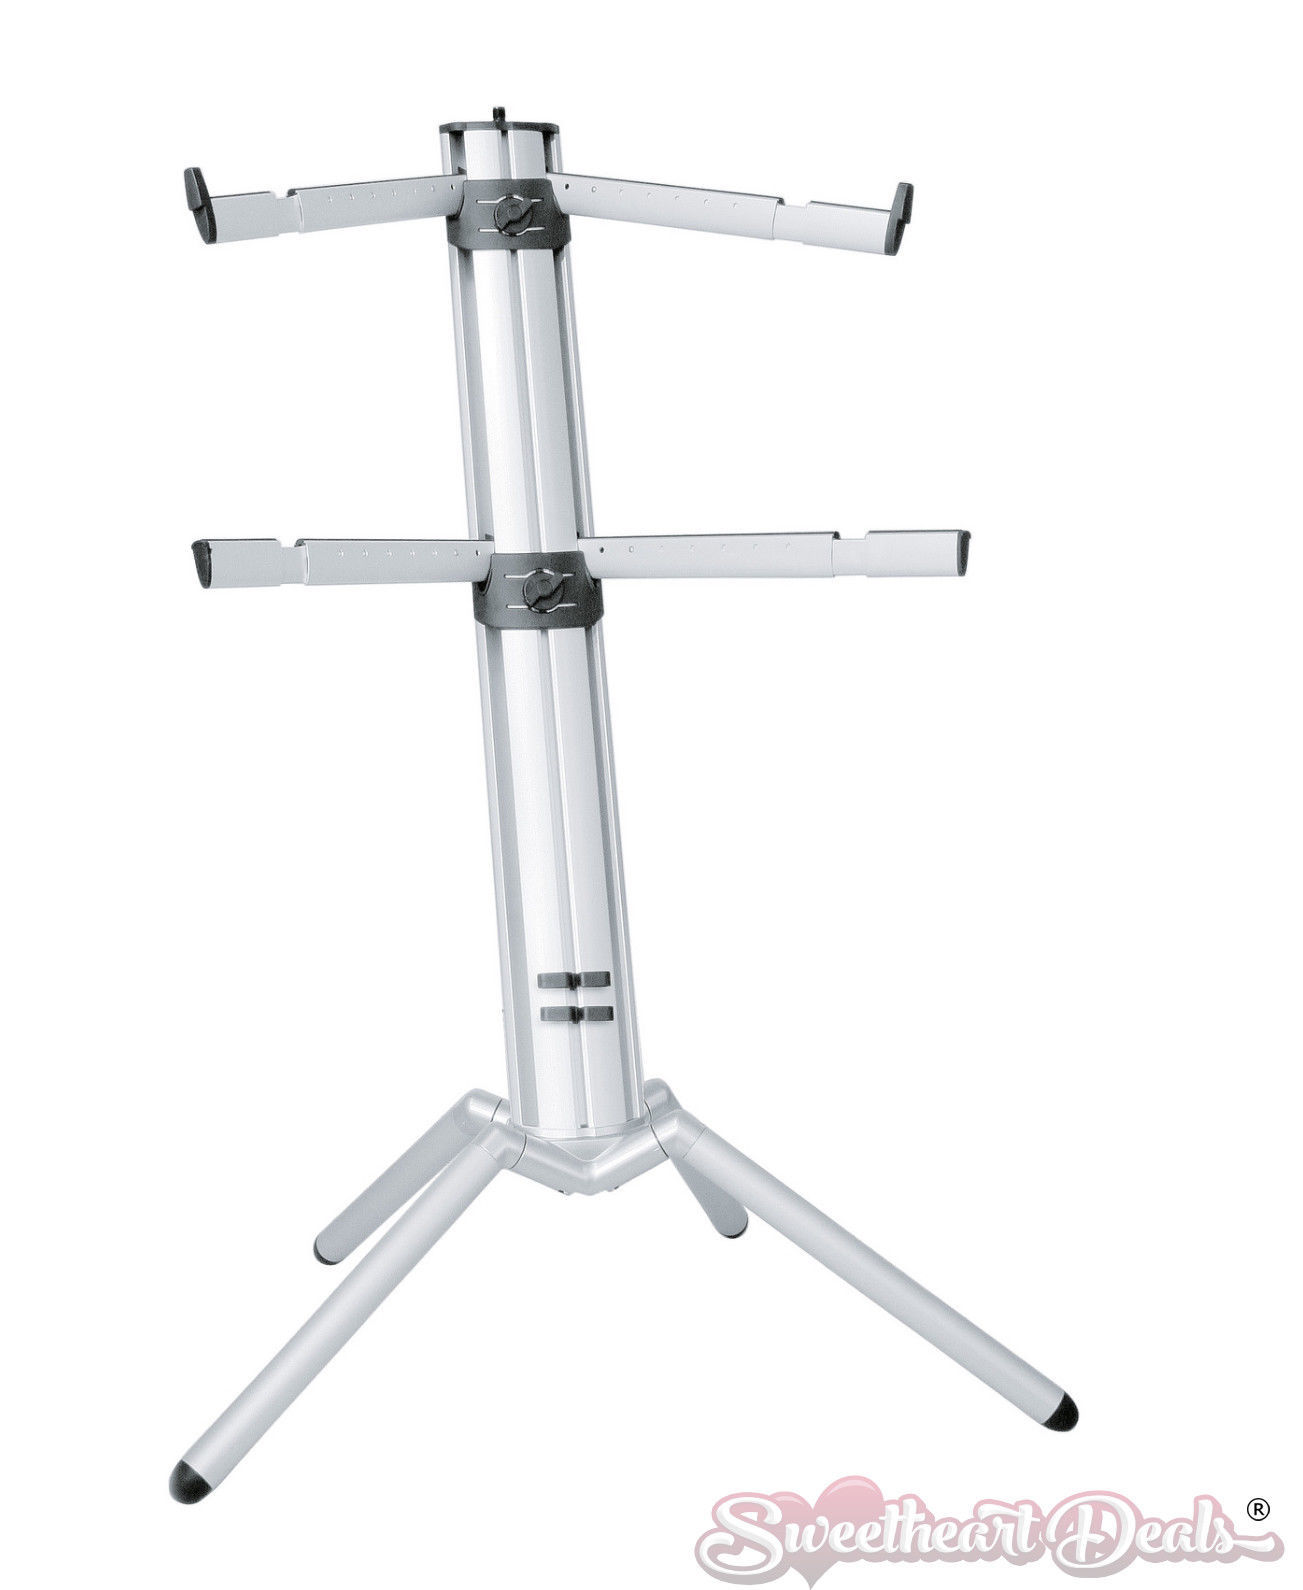 k m spider pro keyboard stand silver 18860 keyboard stands. Black Bedroom Furniture Sets. Home Design Ideas